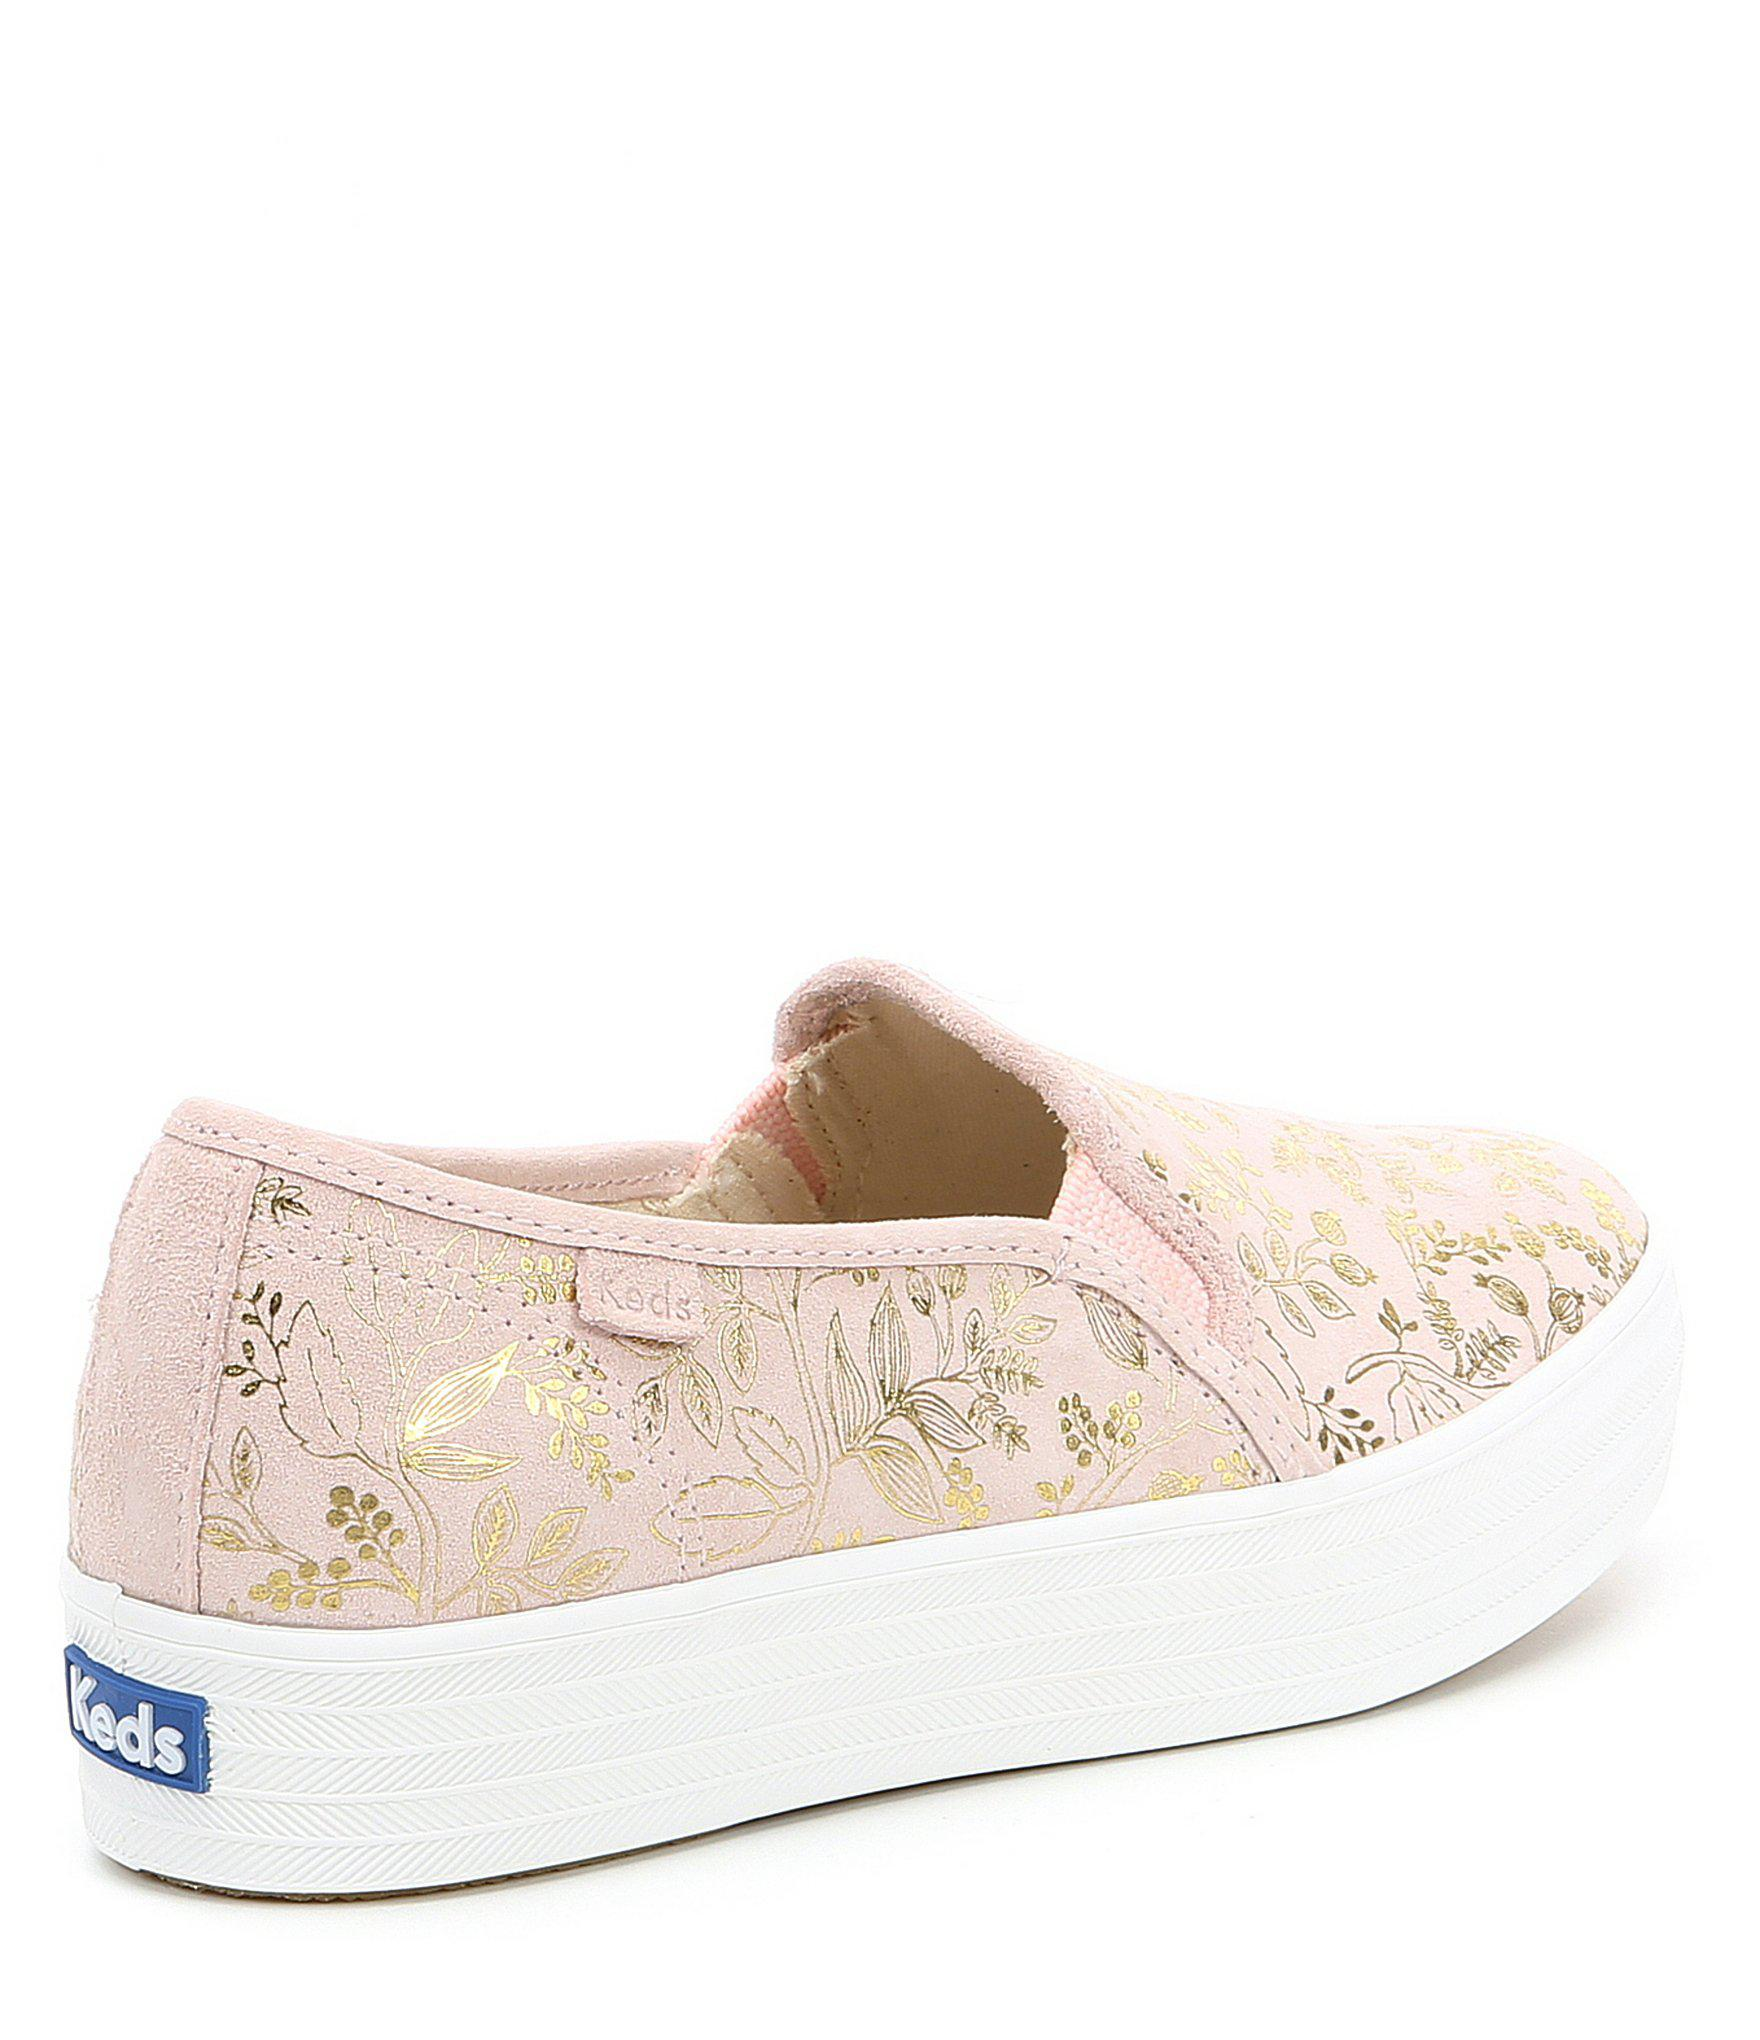 6c6b08fc594b8 Lyst - Keds X Rifle Paper Co. Triple Decker Forest Sneakers in Pink